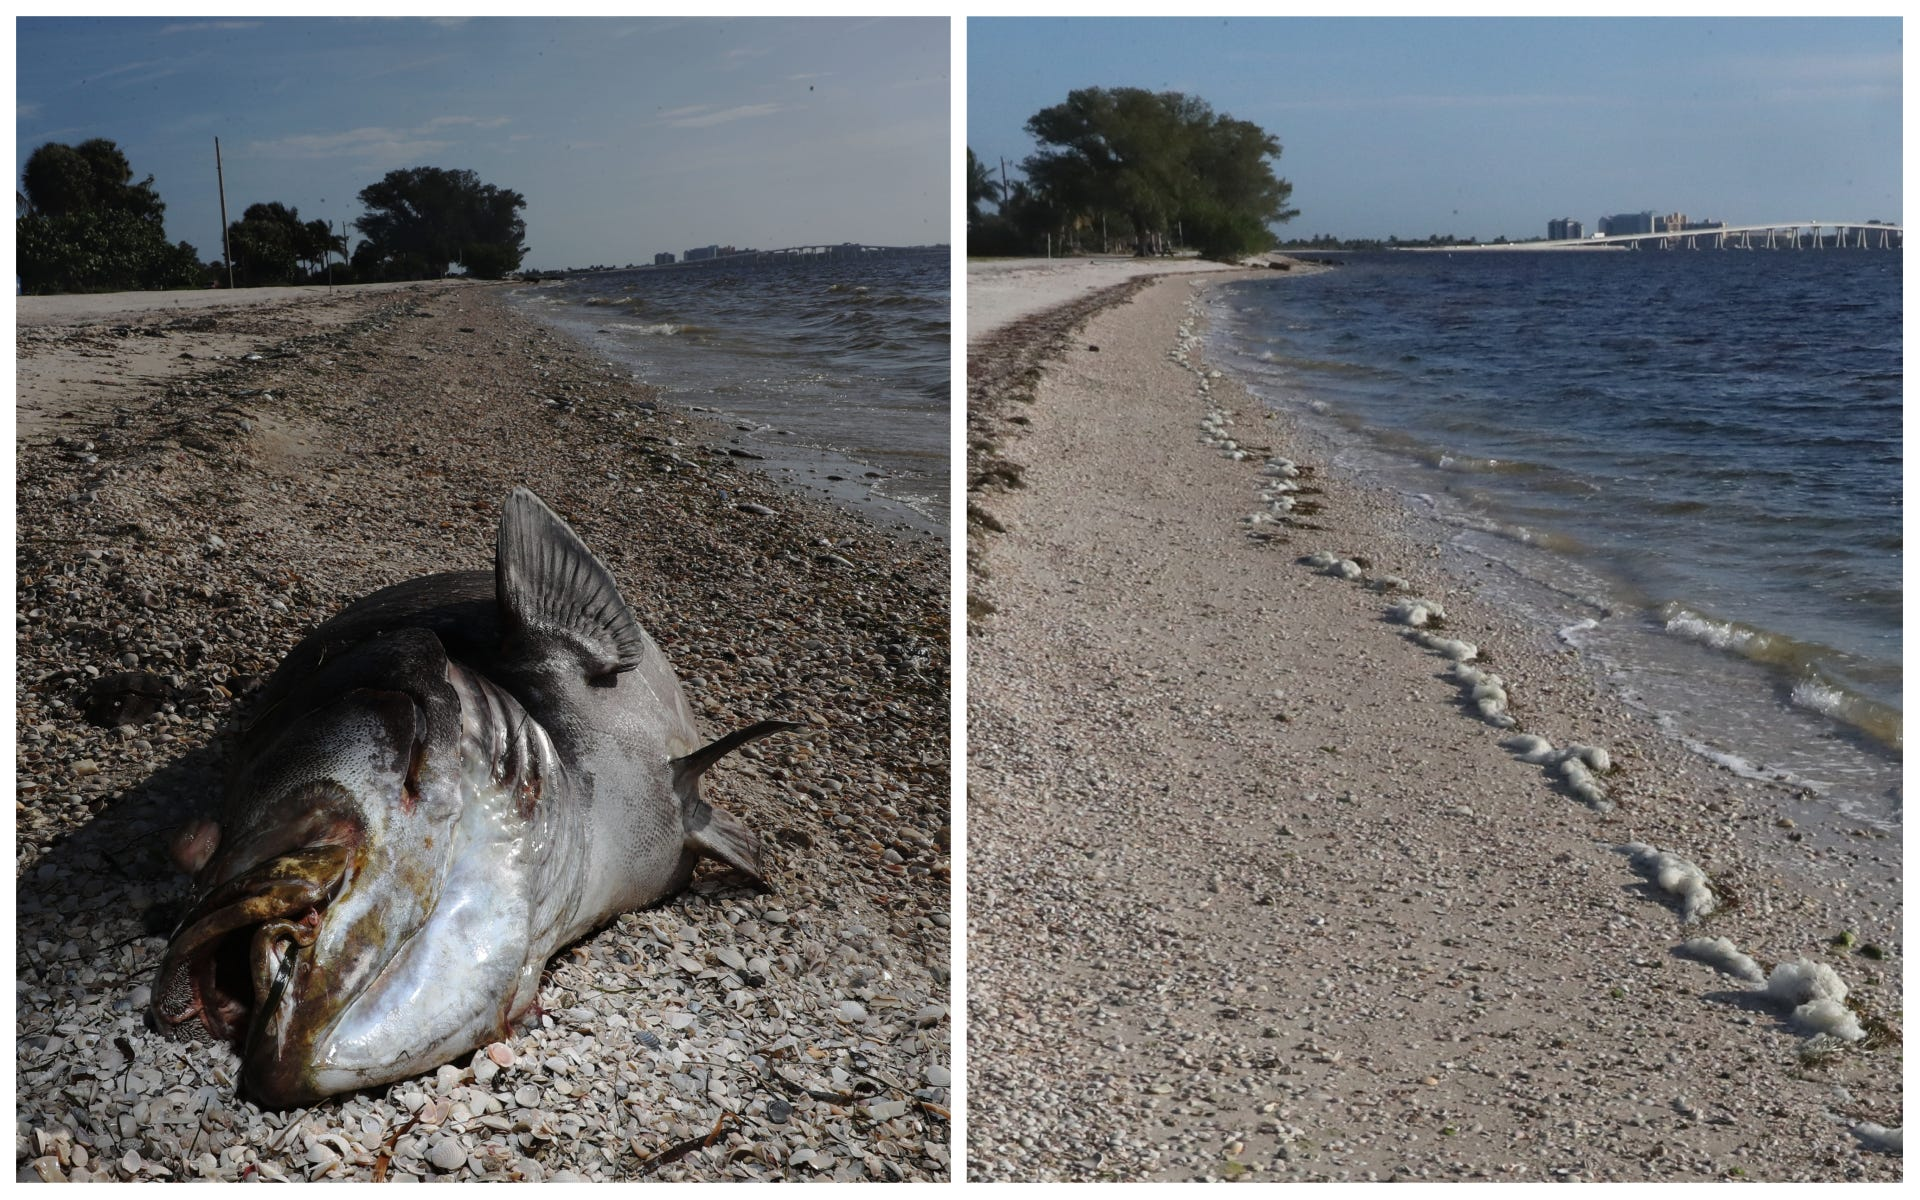 Before and after images show devastation, recovery from red tide on Southwest Florida beaches | USA Today